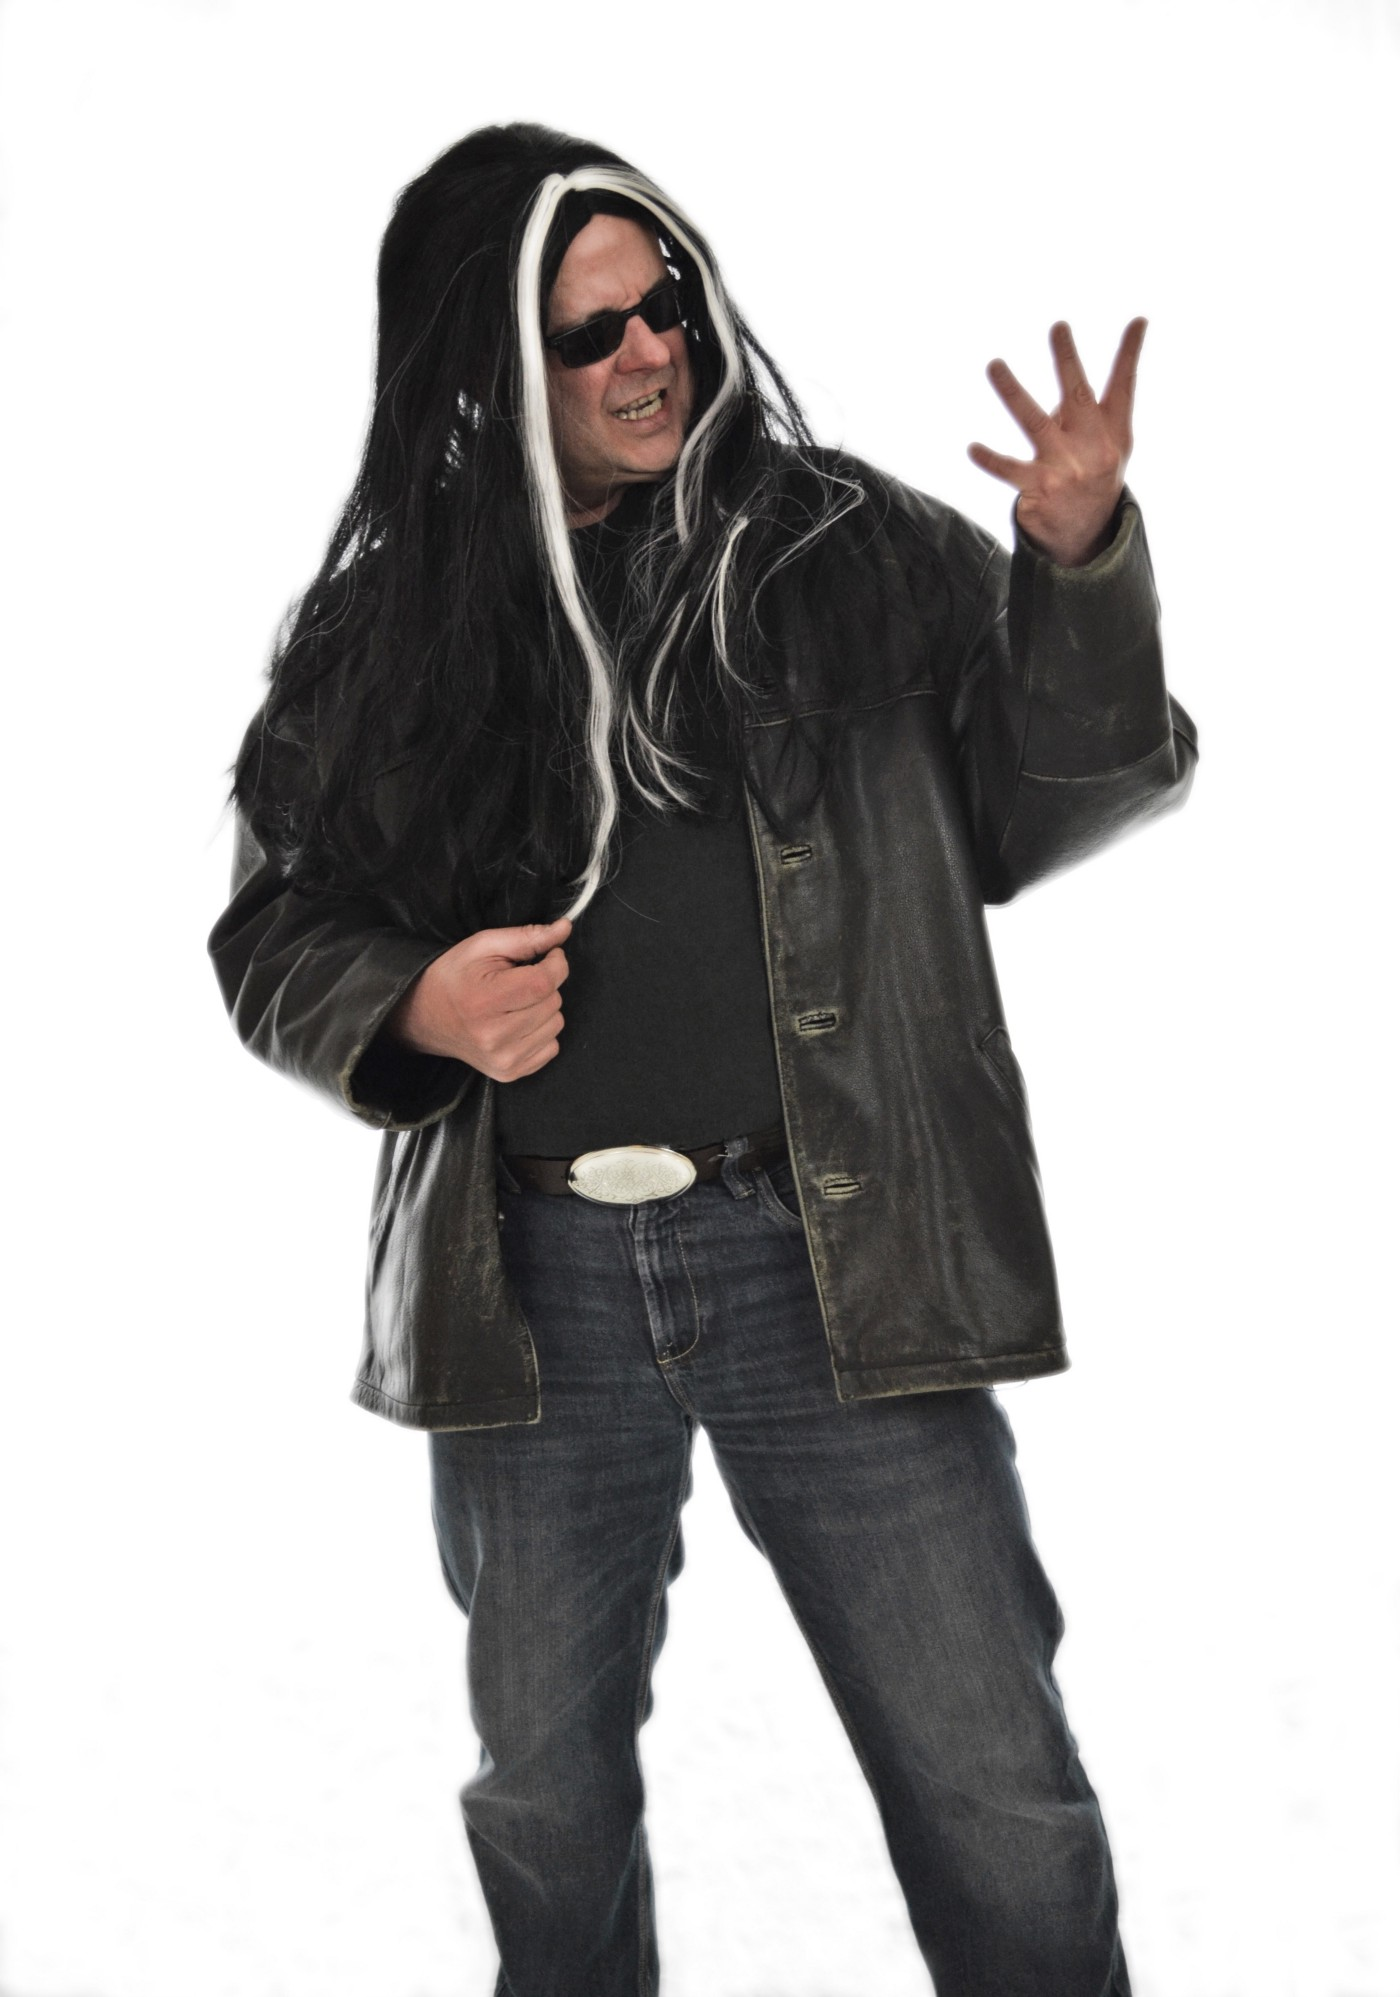 """Man with leather jacket pretending to play a guitar. In other words, an """"air guitarist""""!"""